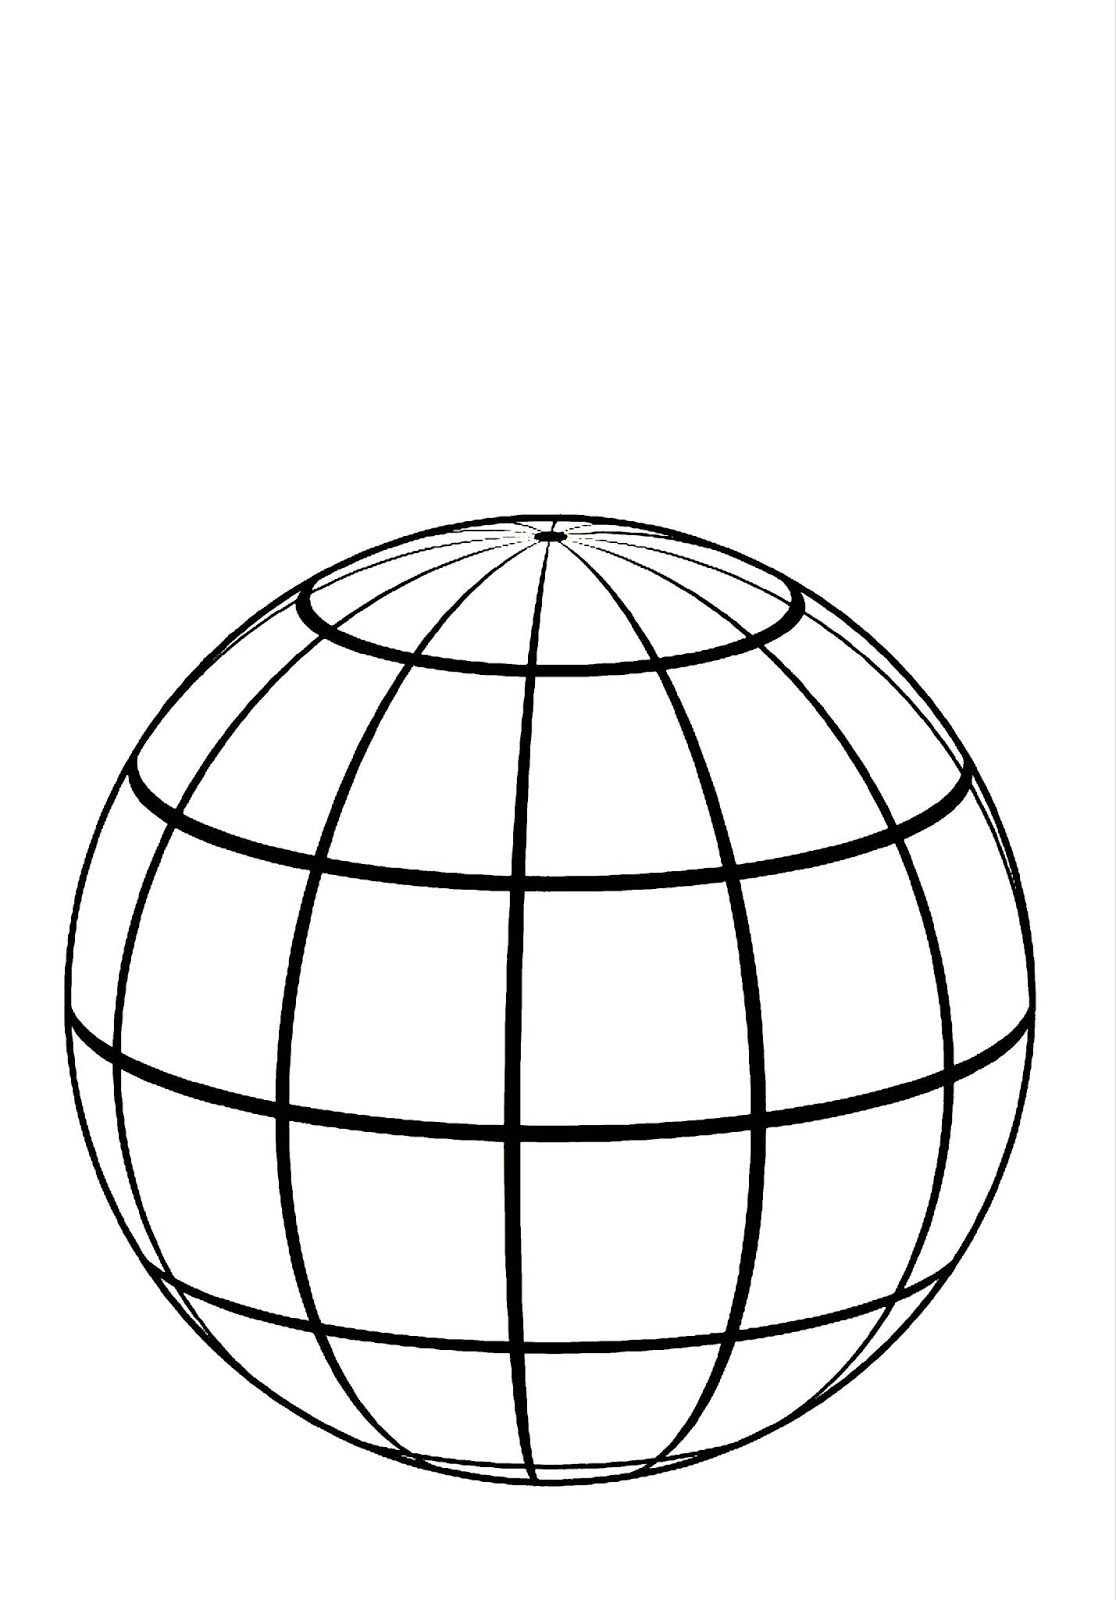 Grid Drawing | Free download best Grid Drawing on ClipArtMag com